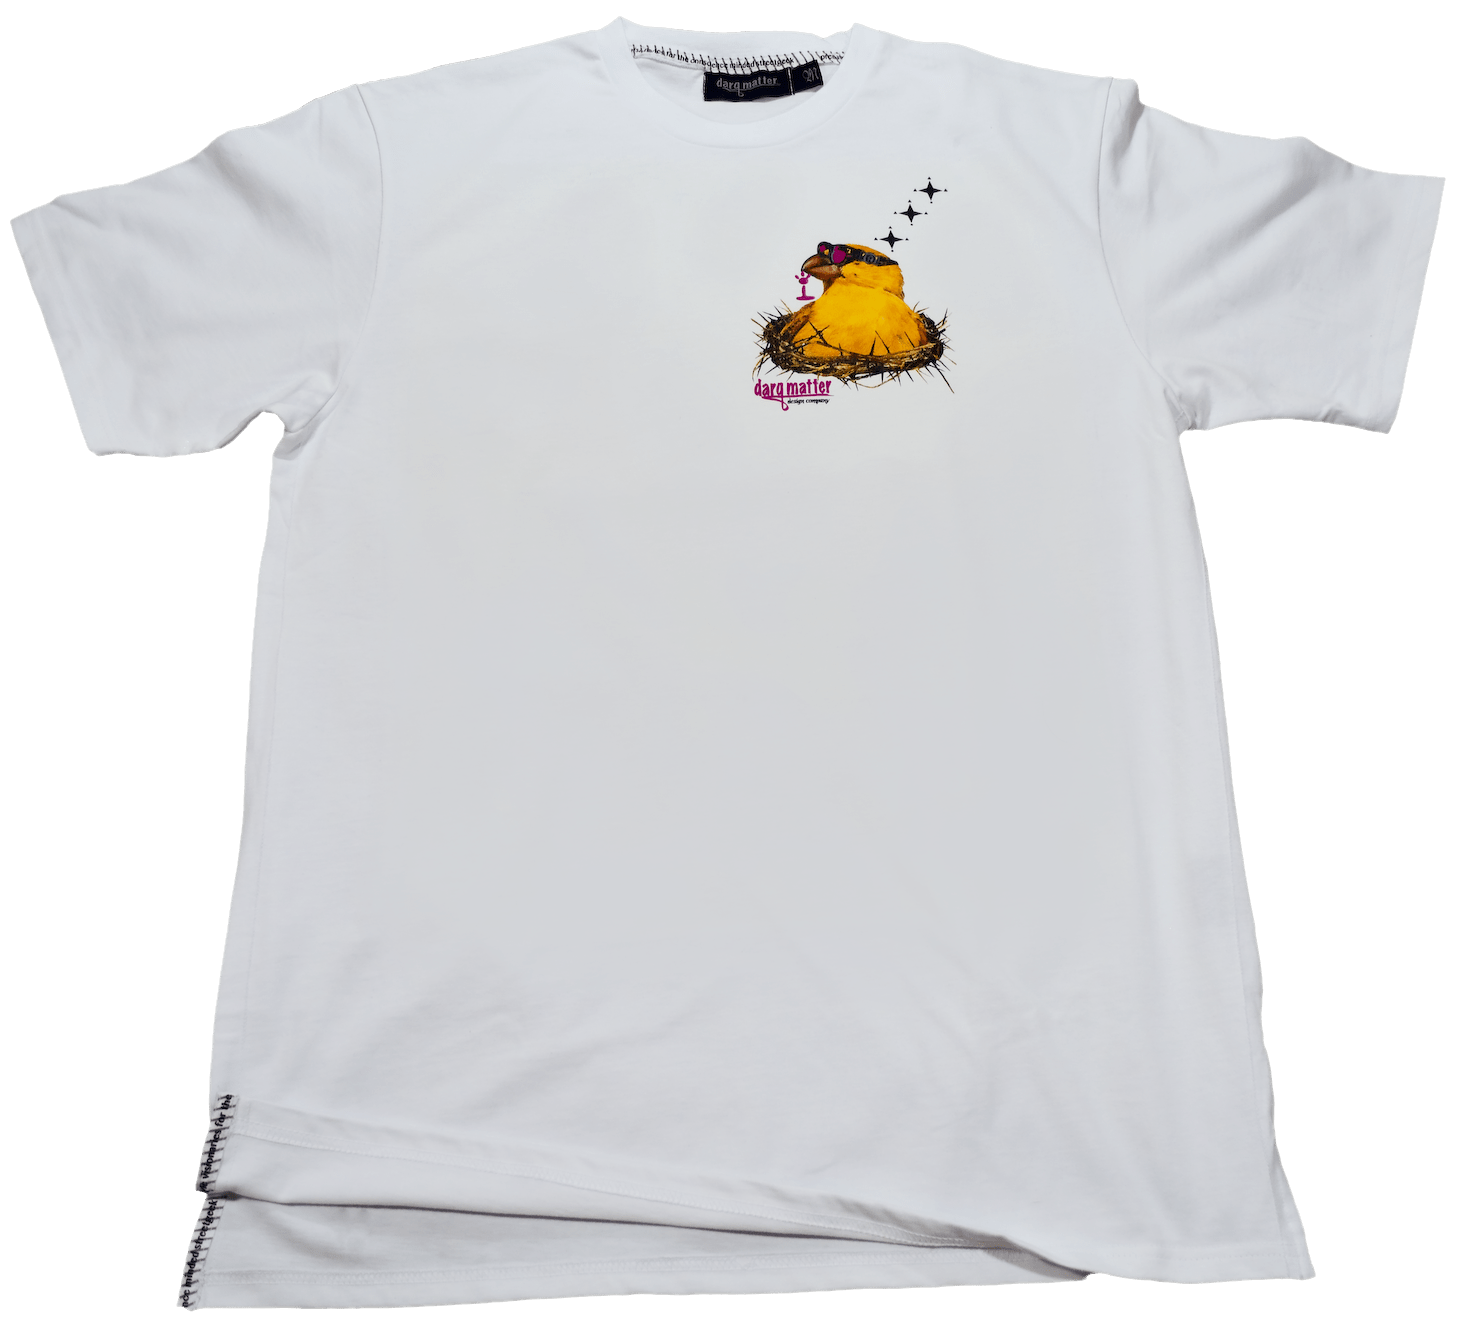 DarqMatterDesign CutnSew T-Shirts Small / White BilderBerd